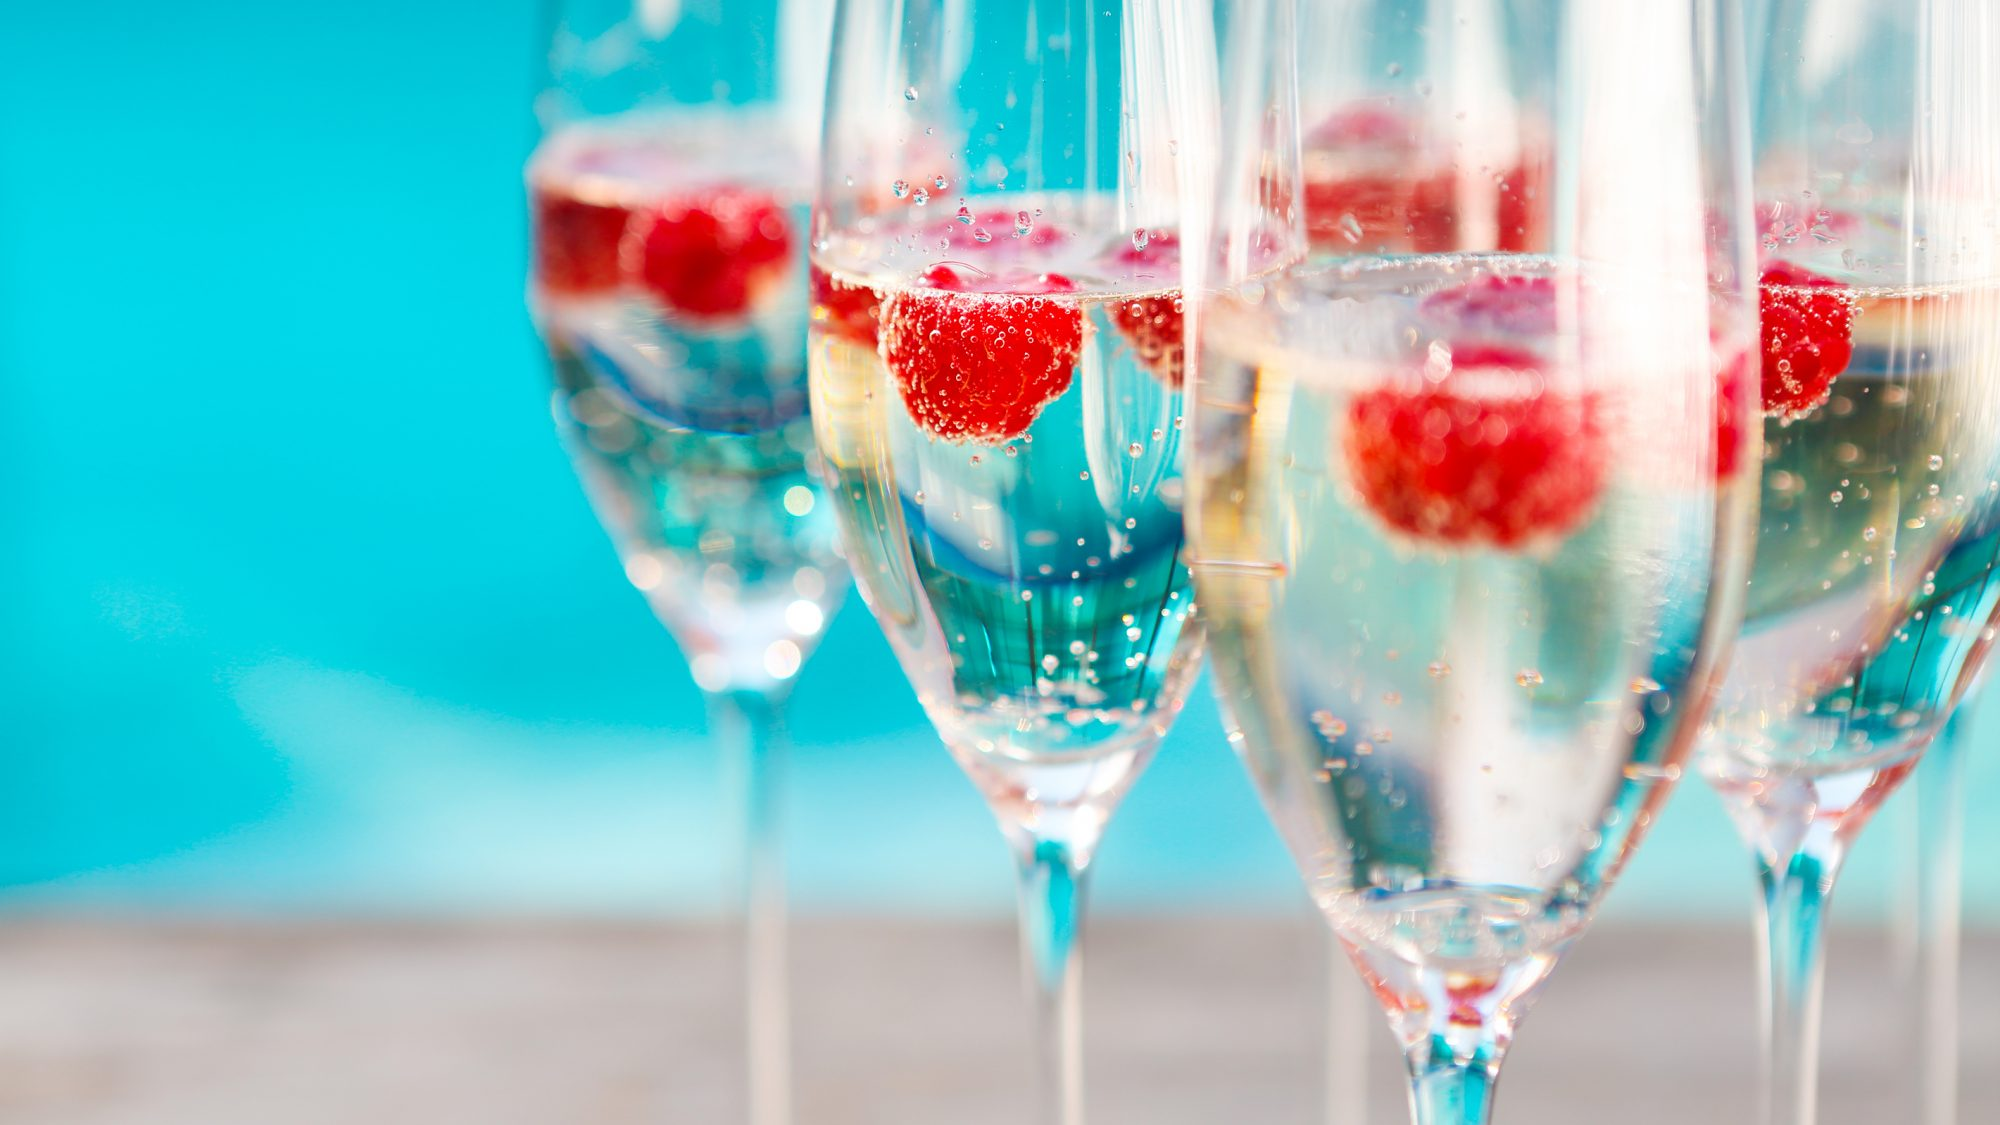 healthiest cocktails: prosecco with raspberries